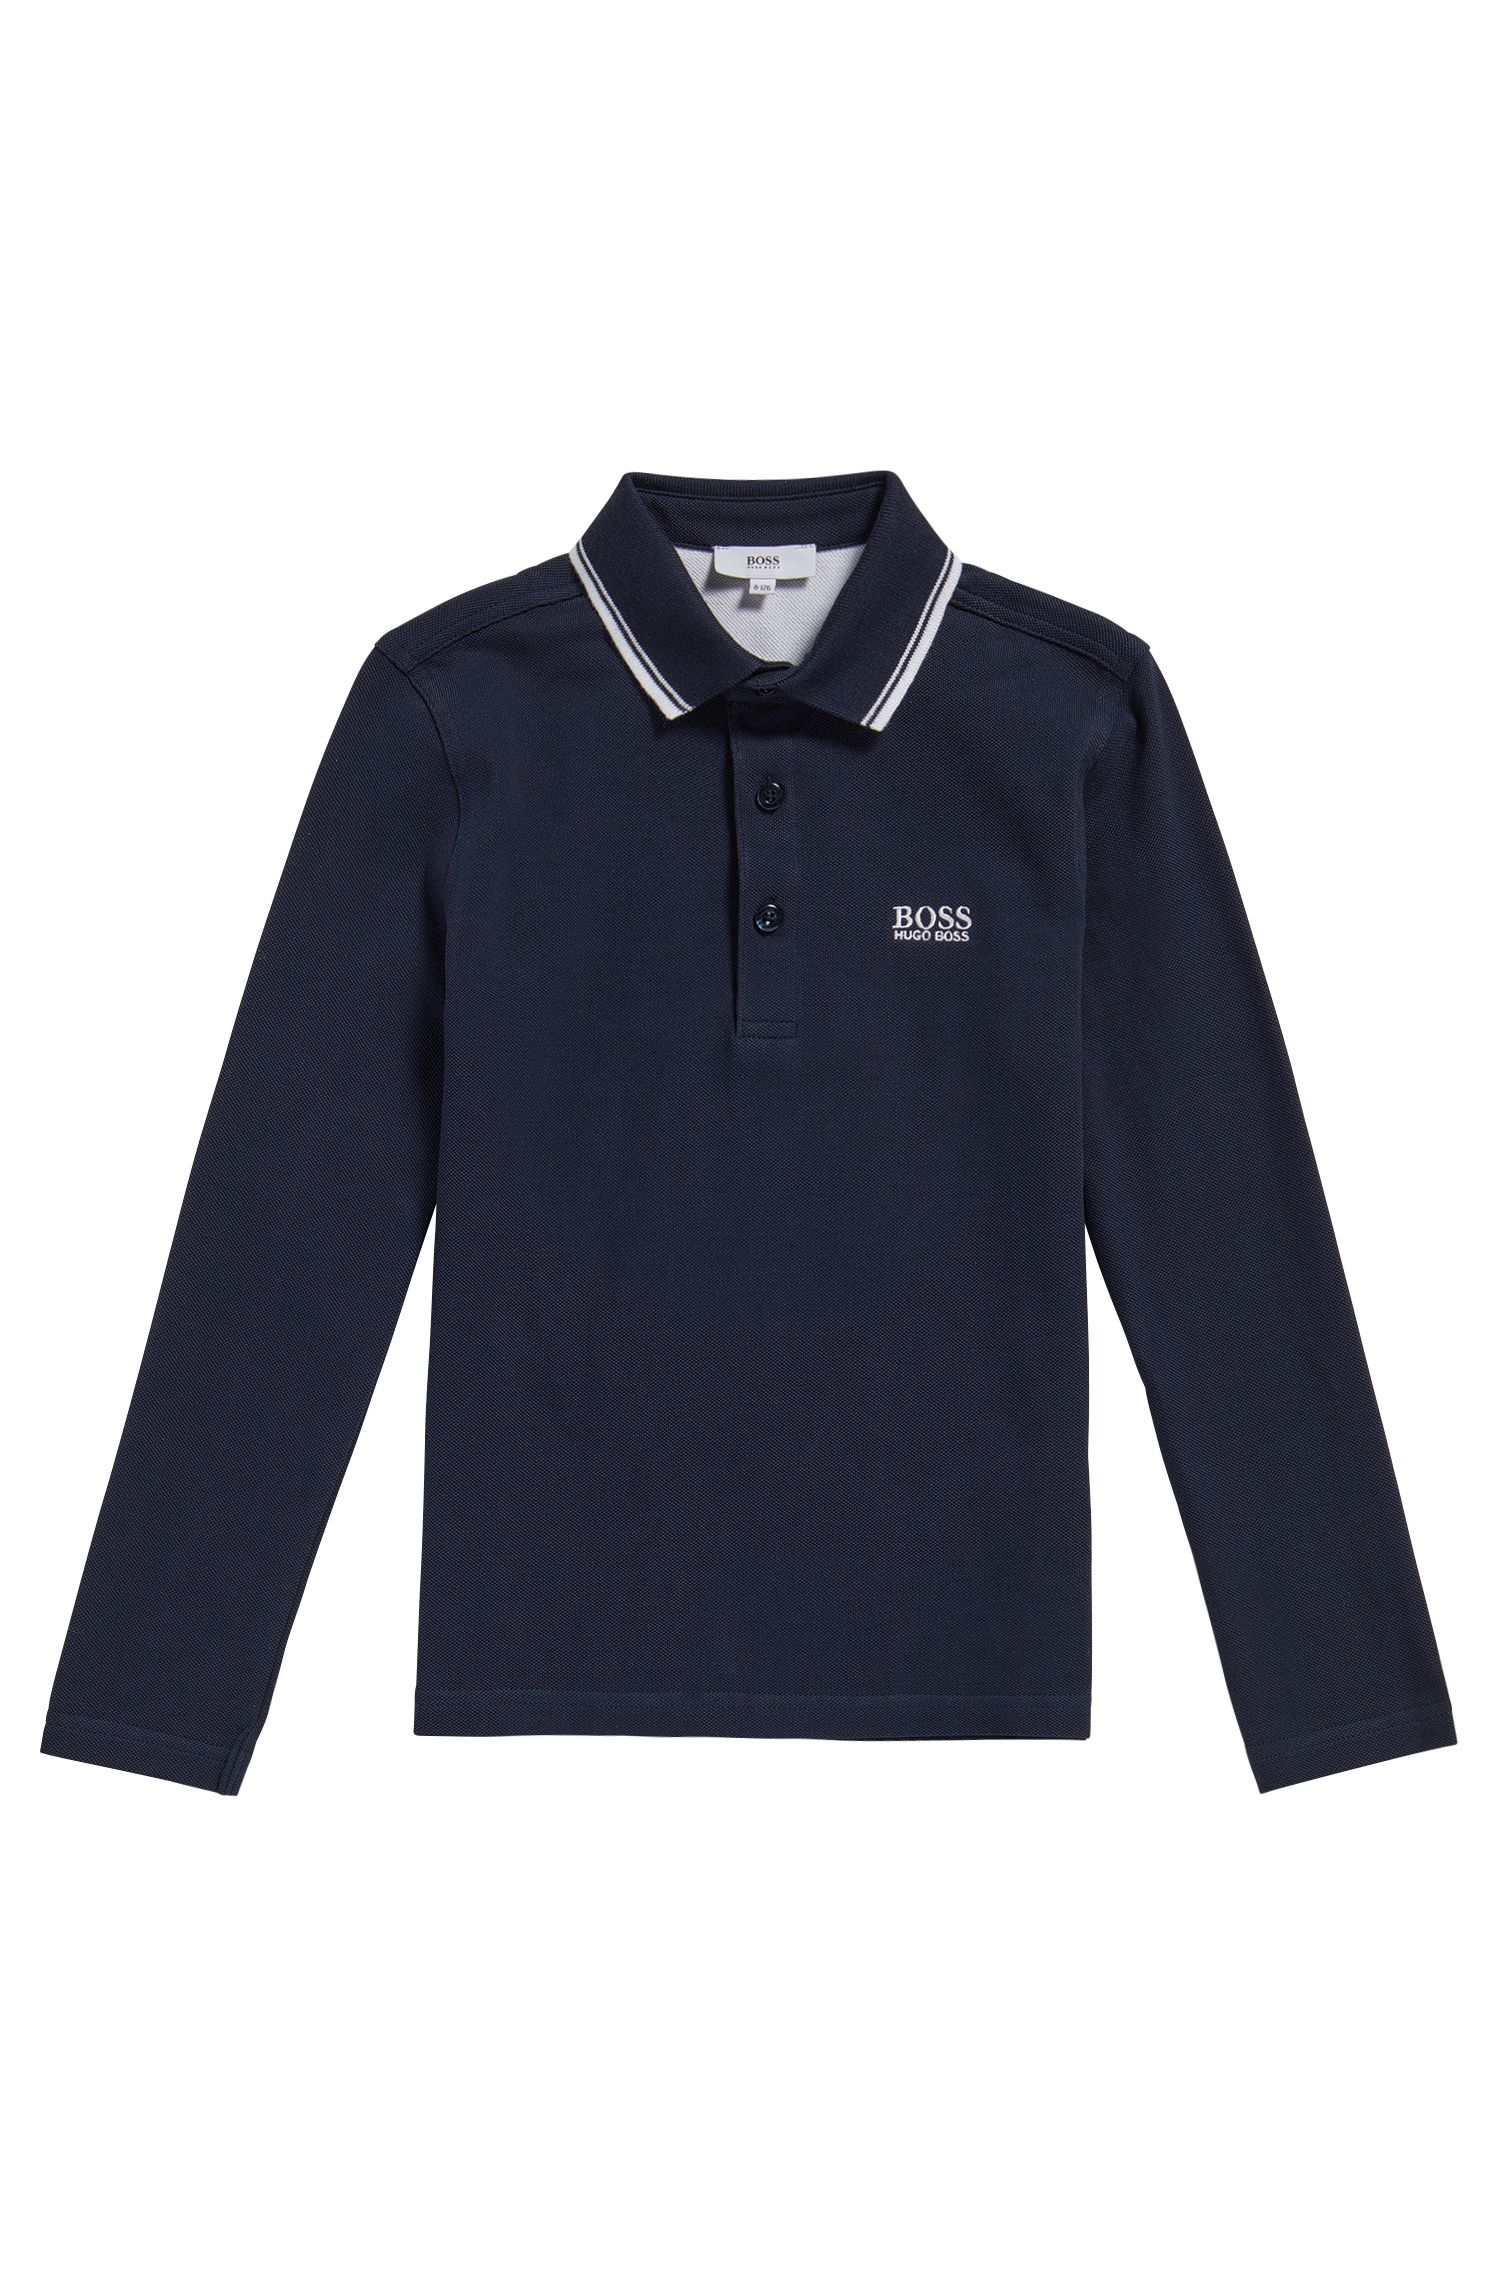 Kids' polo shirt in cotton with striped details: 'J25V24'